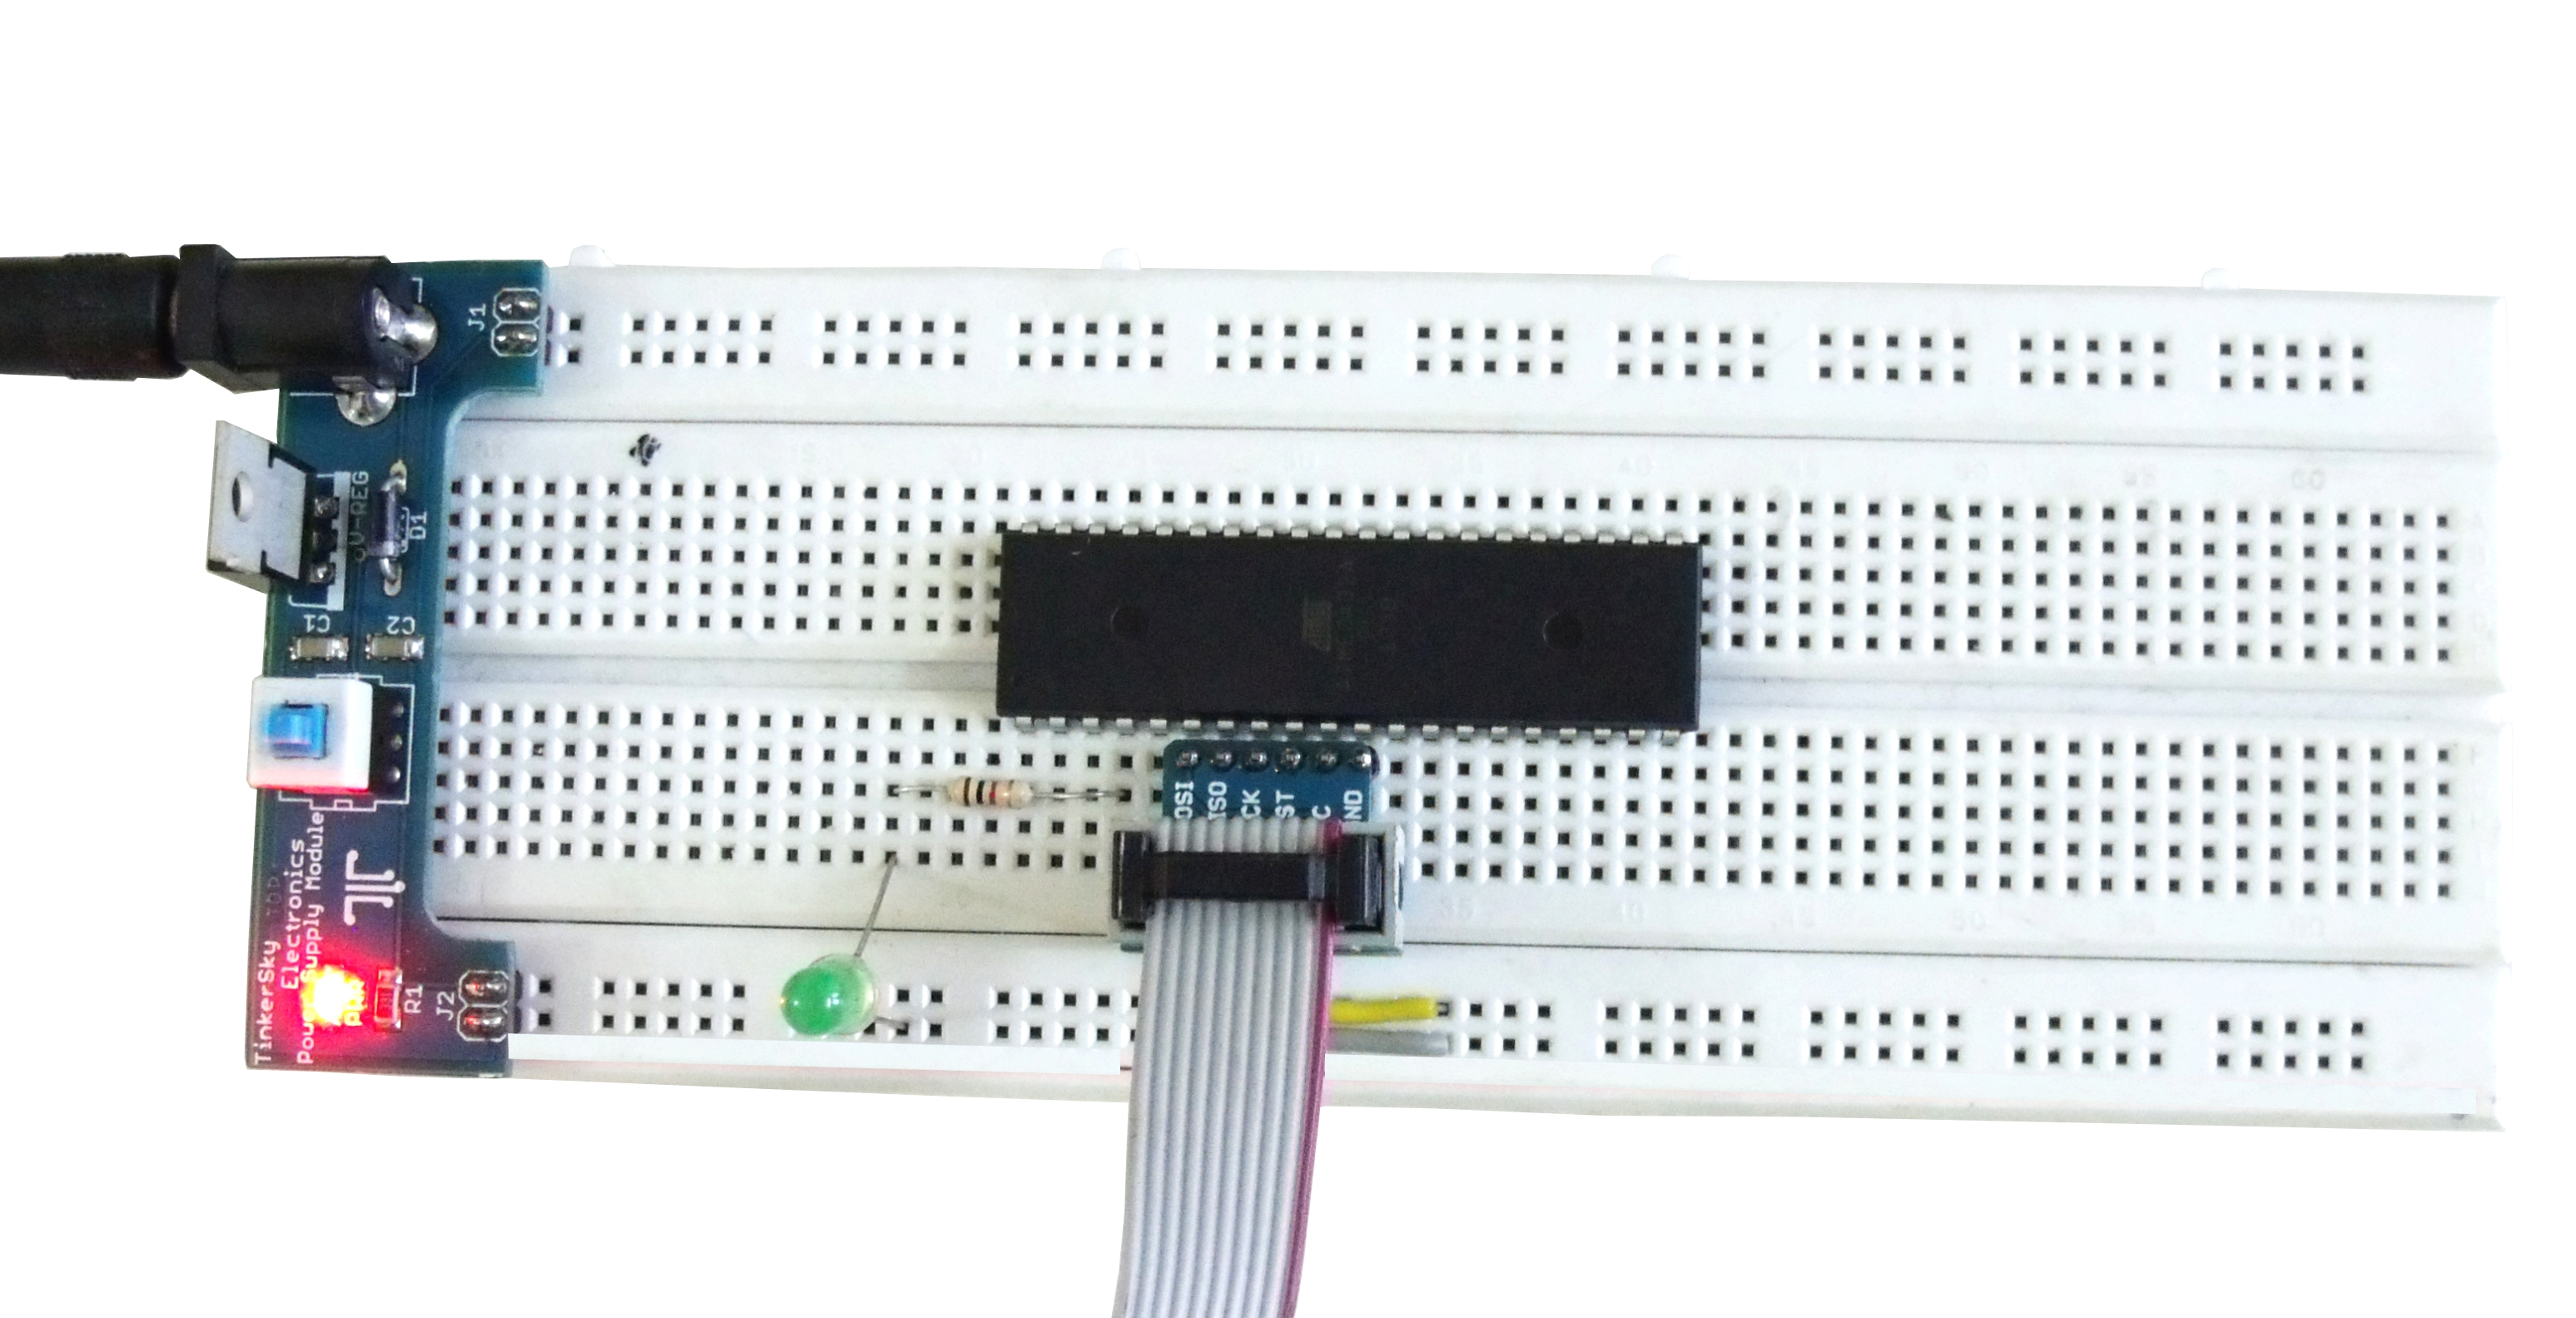 Pulse Width Modulation In Avr Atmega32a Microcontroller The Hardware Is Implemented By Using A Atmega88